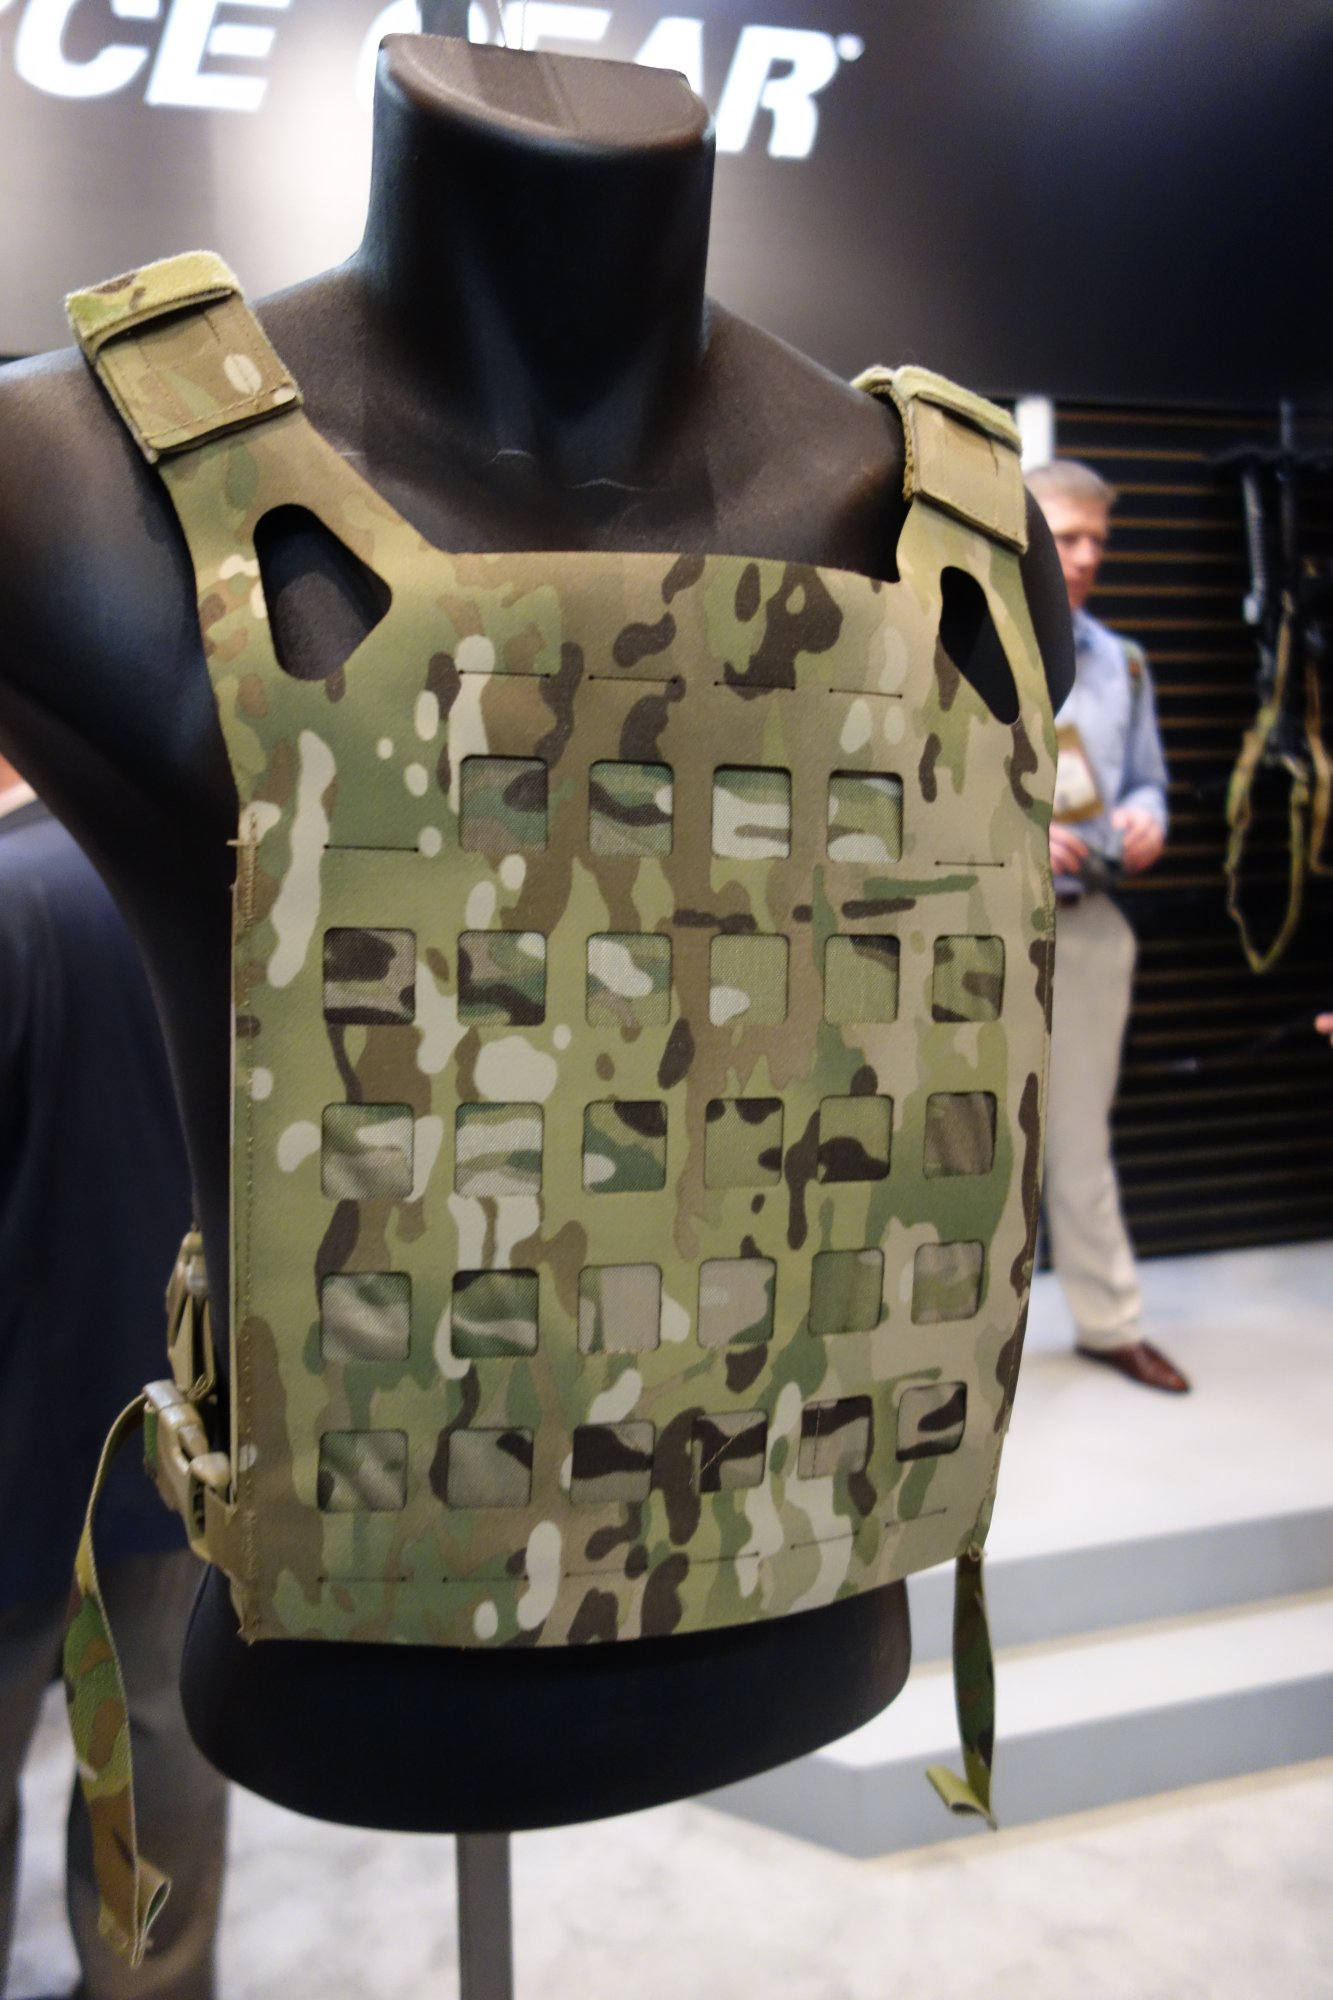 Blue Force Gear (BFG) PLATEminus Ultra-Lightweight Low-Profile/Low-Visibility Tactical Armor Plate Carrier and BELTminus and SPLITminus Battle Belt/Chest Rig/Harness Systems with MOLLEminus Cutaway MOLLE System and ULTRAcomp Laminate: Tactical Body Armor Goes Super-Minimalist